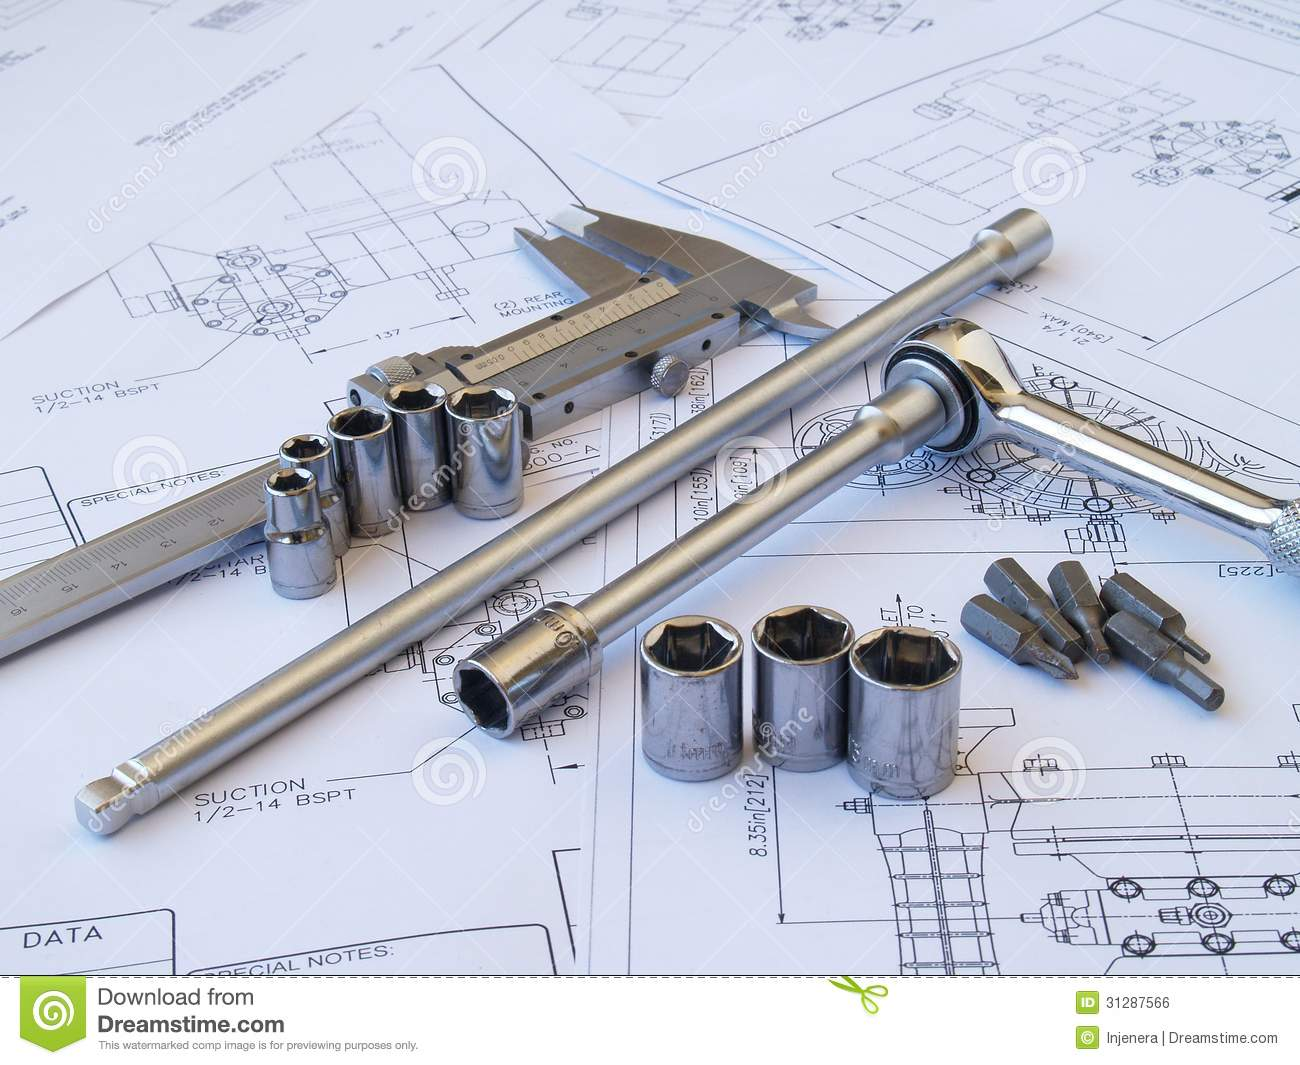 home design software today to get started on your dream house plan.